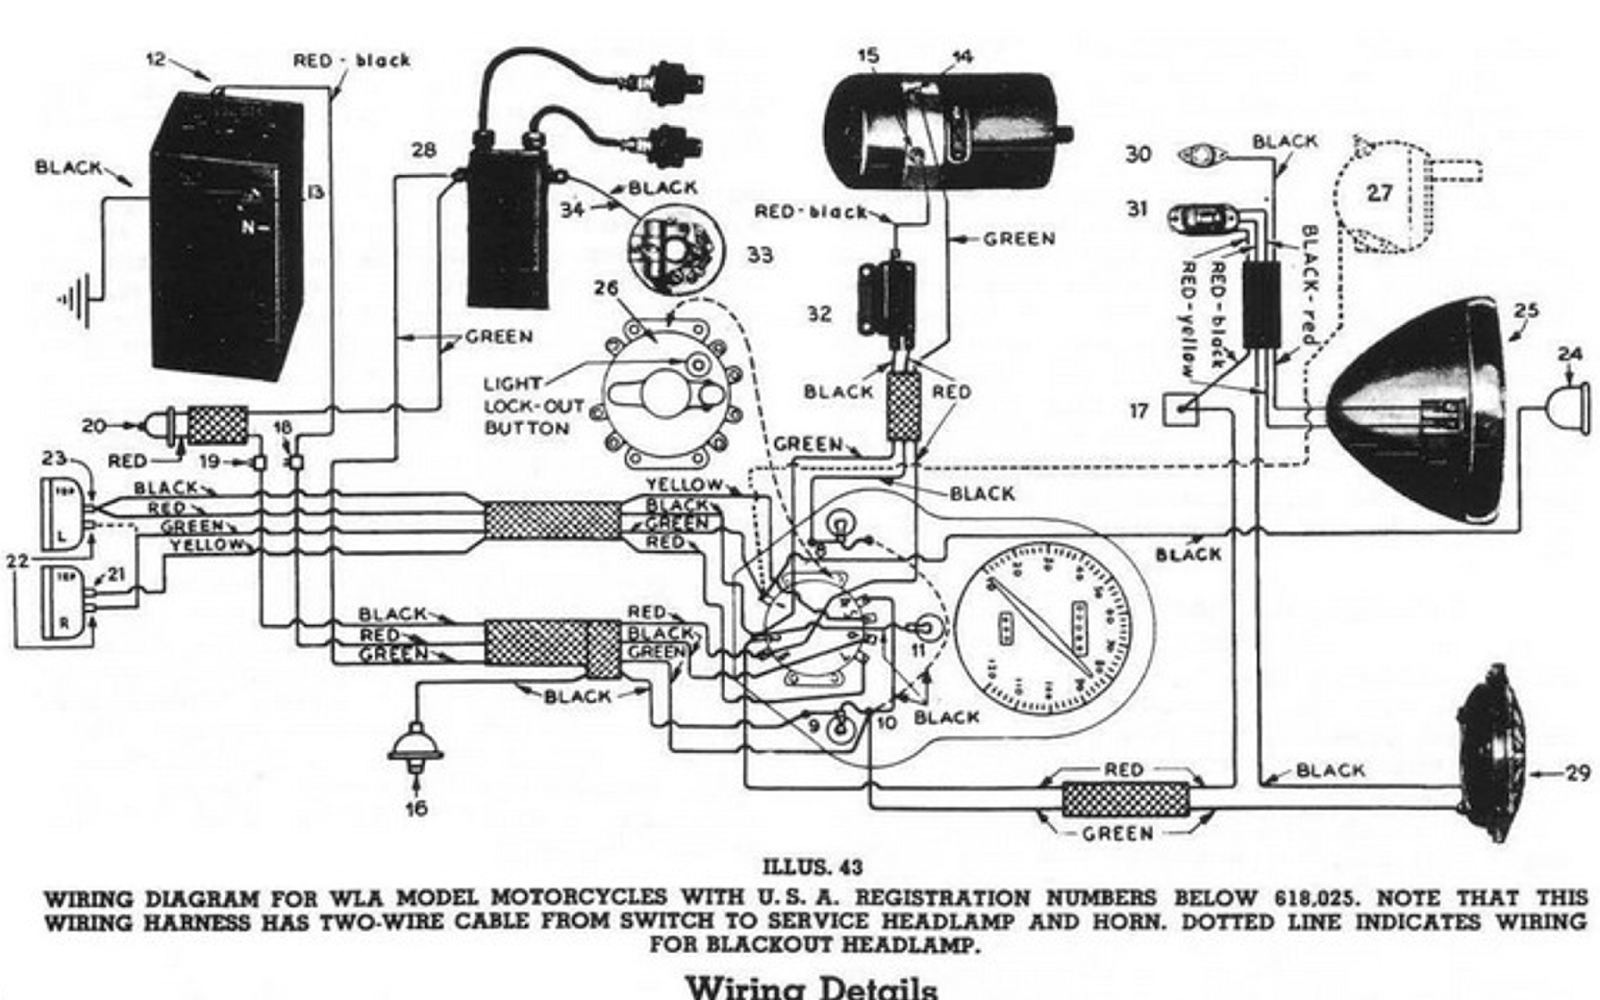 Harley 45 Wiring Diagram Archive Of Automotive Diagrams 1941 Davidson Wl Restoration Re The Rh Harley1941wl Blogspot Com